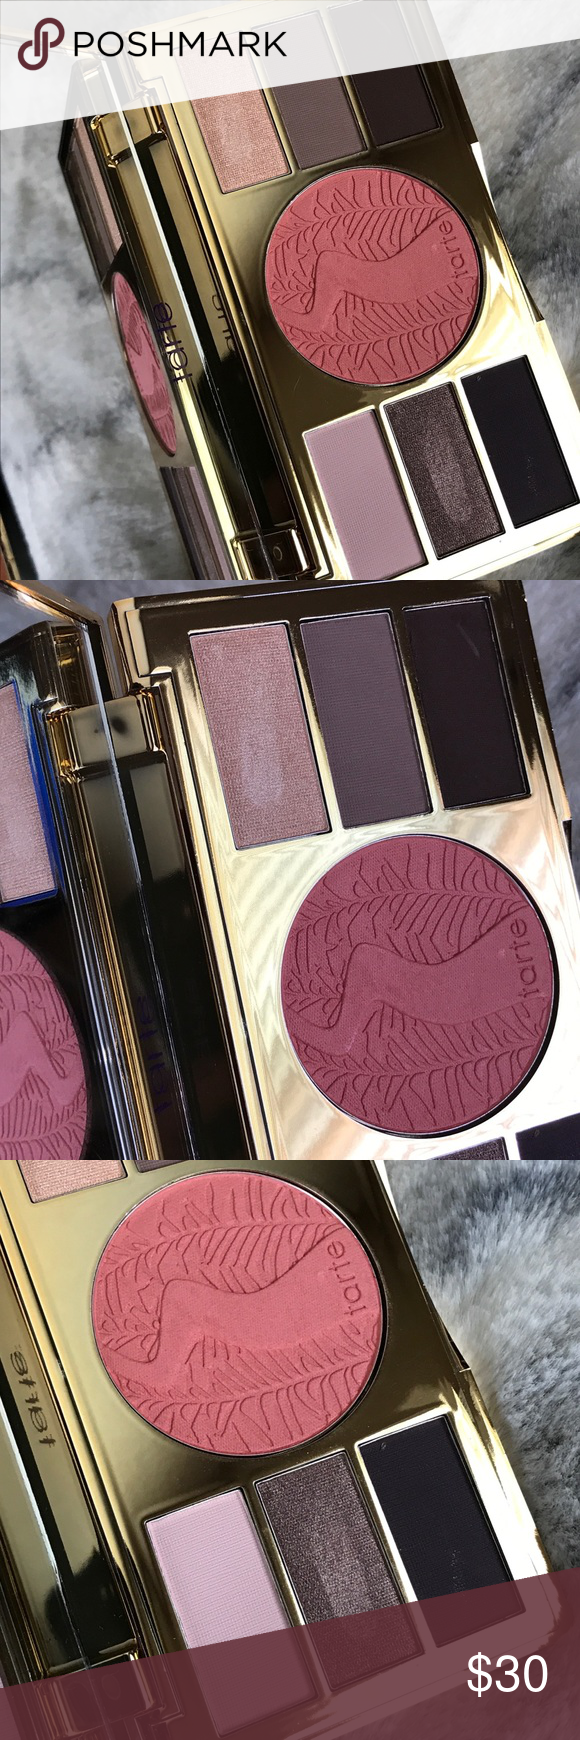 Tarte Be Your Own Tarteist Eye & Cheek Palette Tarte Be Your Own Tarteist. Amazonian clay eye cheek palette.  Eyeshadow Shades: Pink Beyond, Taupe For The Best, Dreams Plum True, Out Of This Pearl, Thistle Be The Day, Paint The Brown  Eyeshadow Size: Net Wt. 1g / 0.035 Oz. X6 Blush Shade: Talented Blush Size: 5.6g / 0.2 Oz. Condition: New, No Box, Looks like 2 shades were swatched (Taupe For The Best & Out Of This Pearl)  Smoke free, pet free home. Thank you for viewing my listing. tarte Makeup  #browneyeshadow